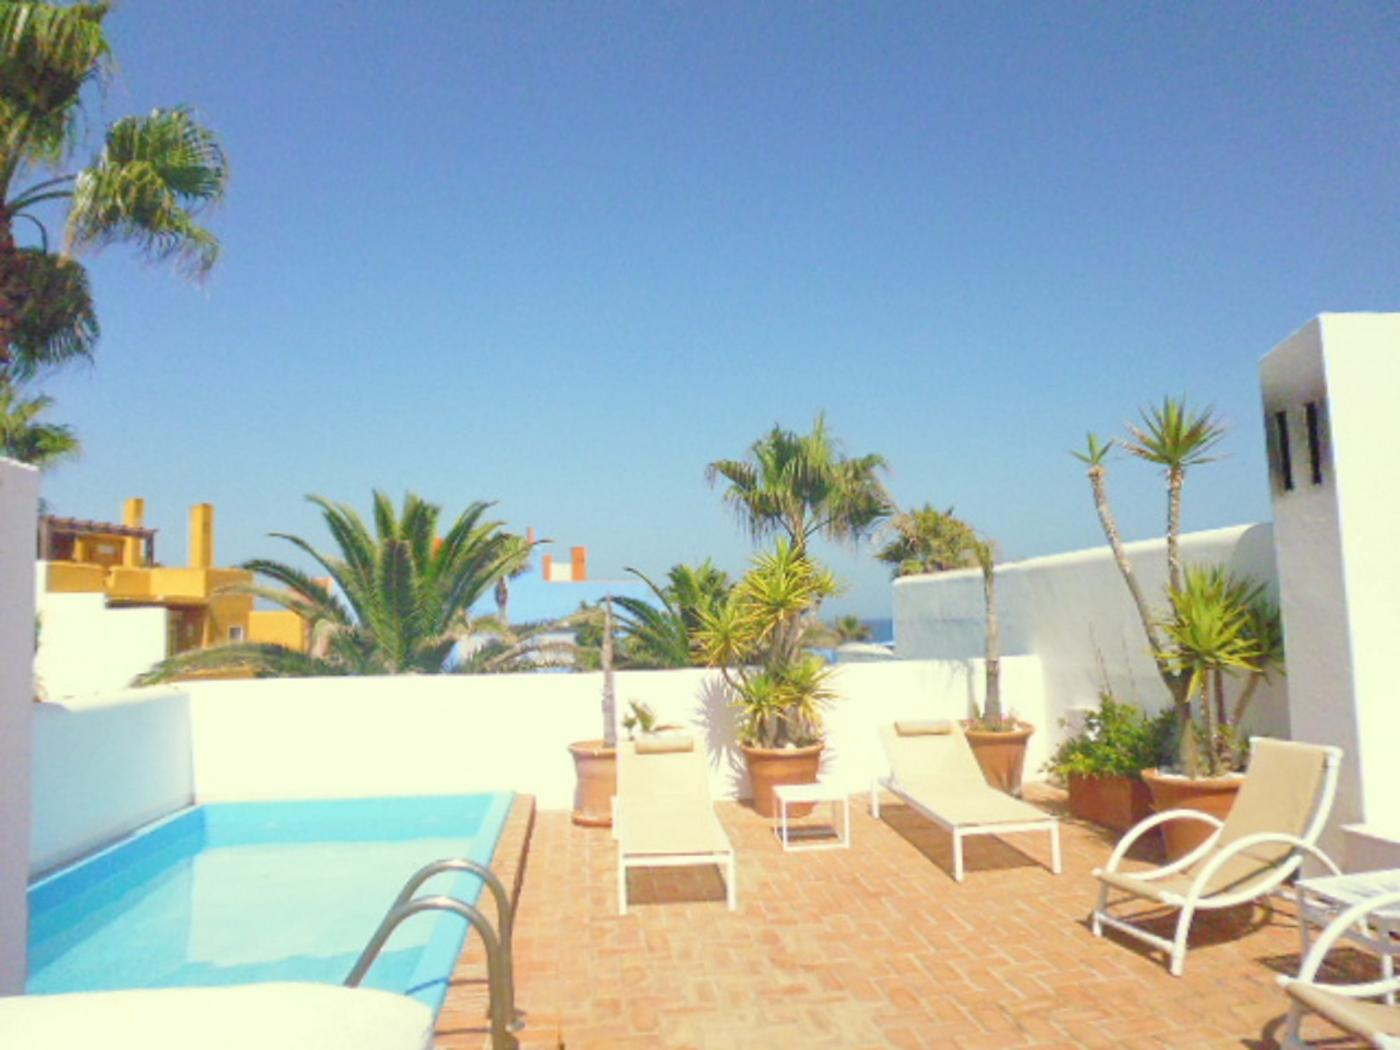 3 Bedroom Town House for Sale in Sotogrande |